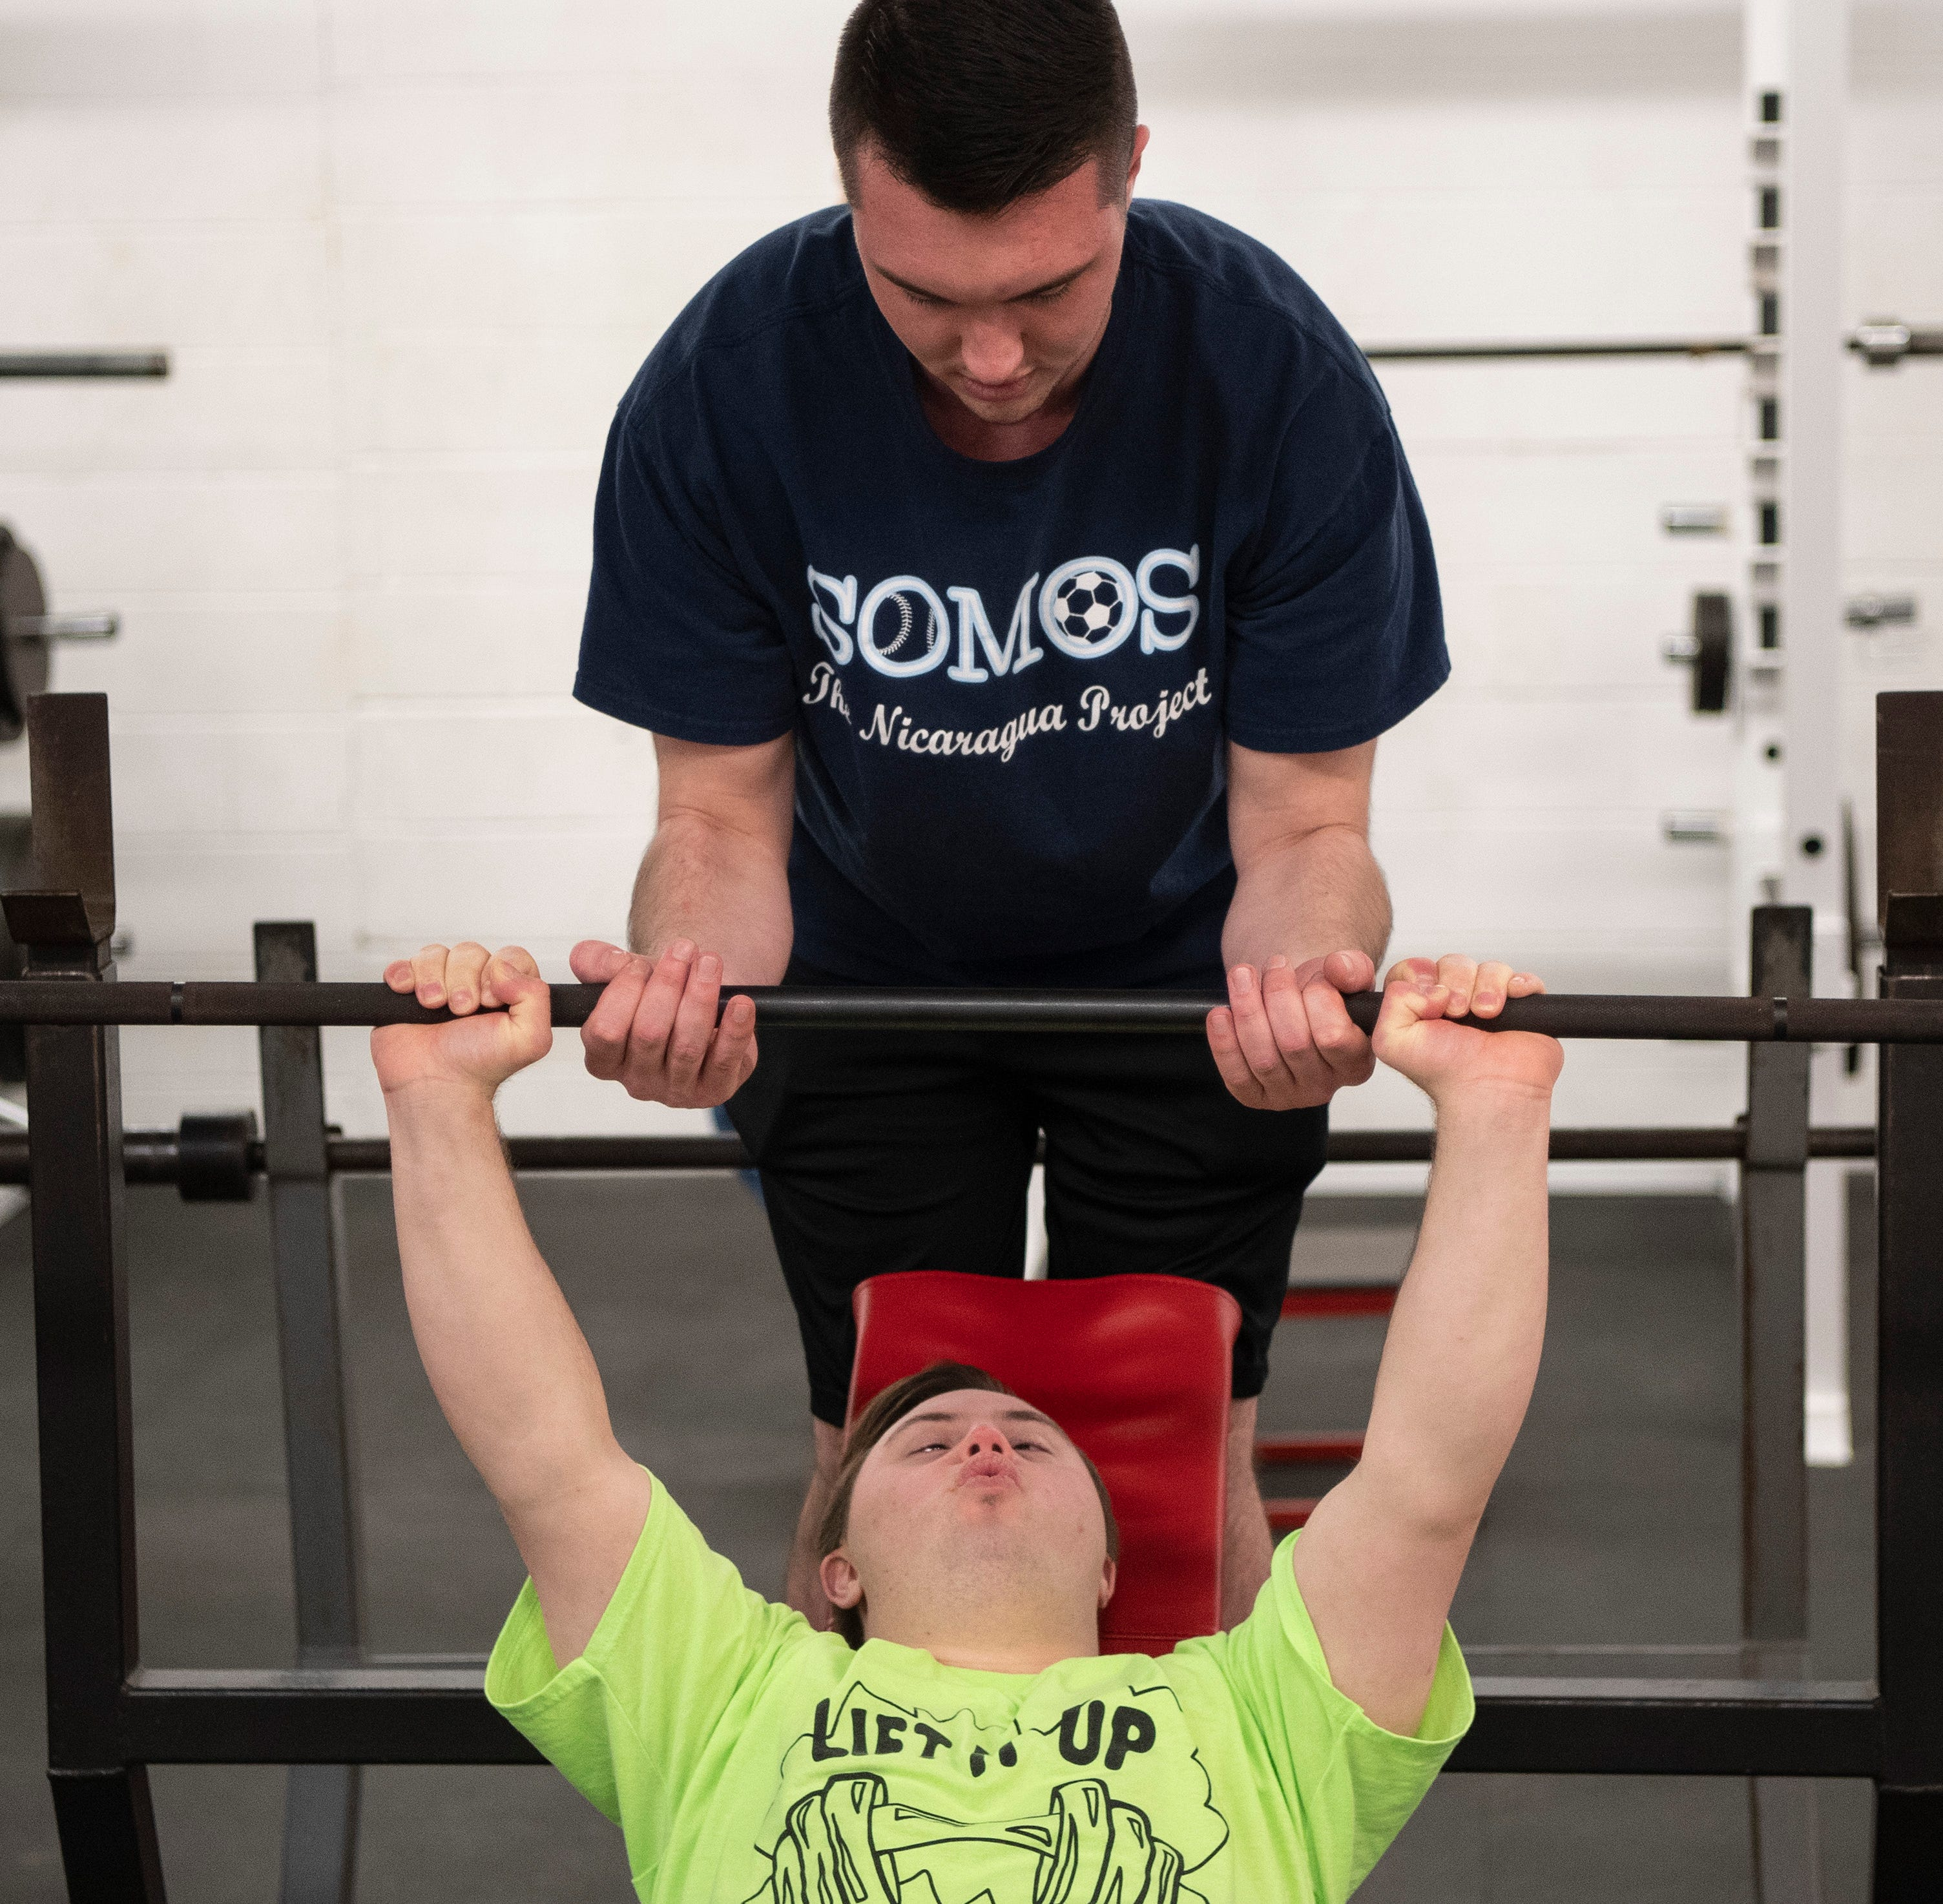 Challenger powerlifting program sharing burdens, building community